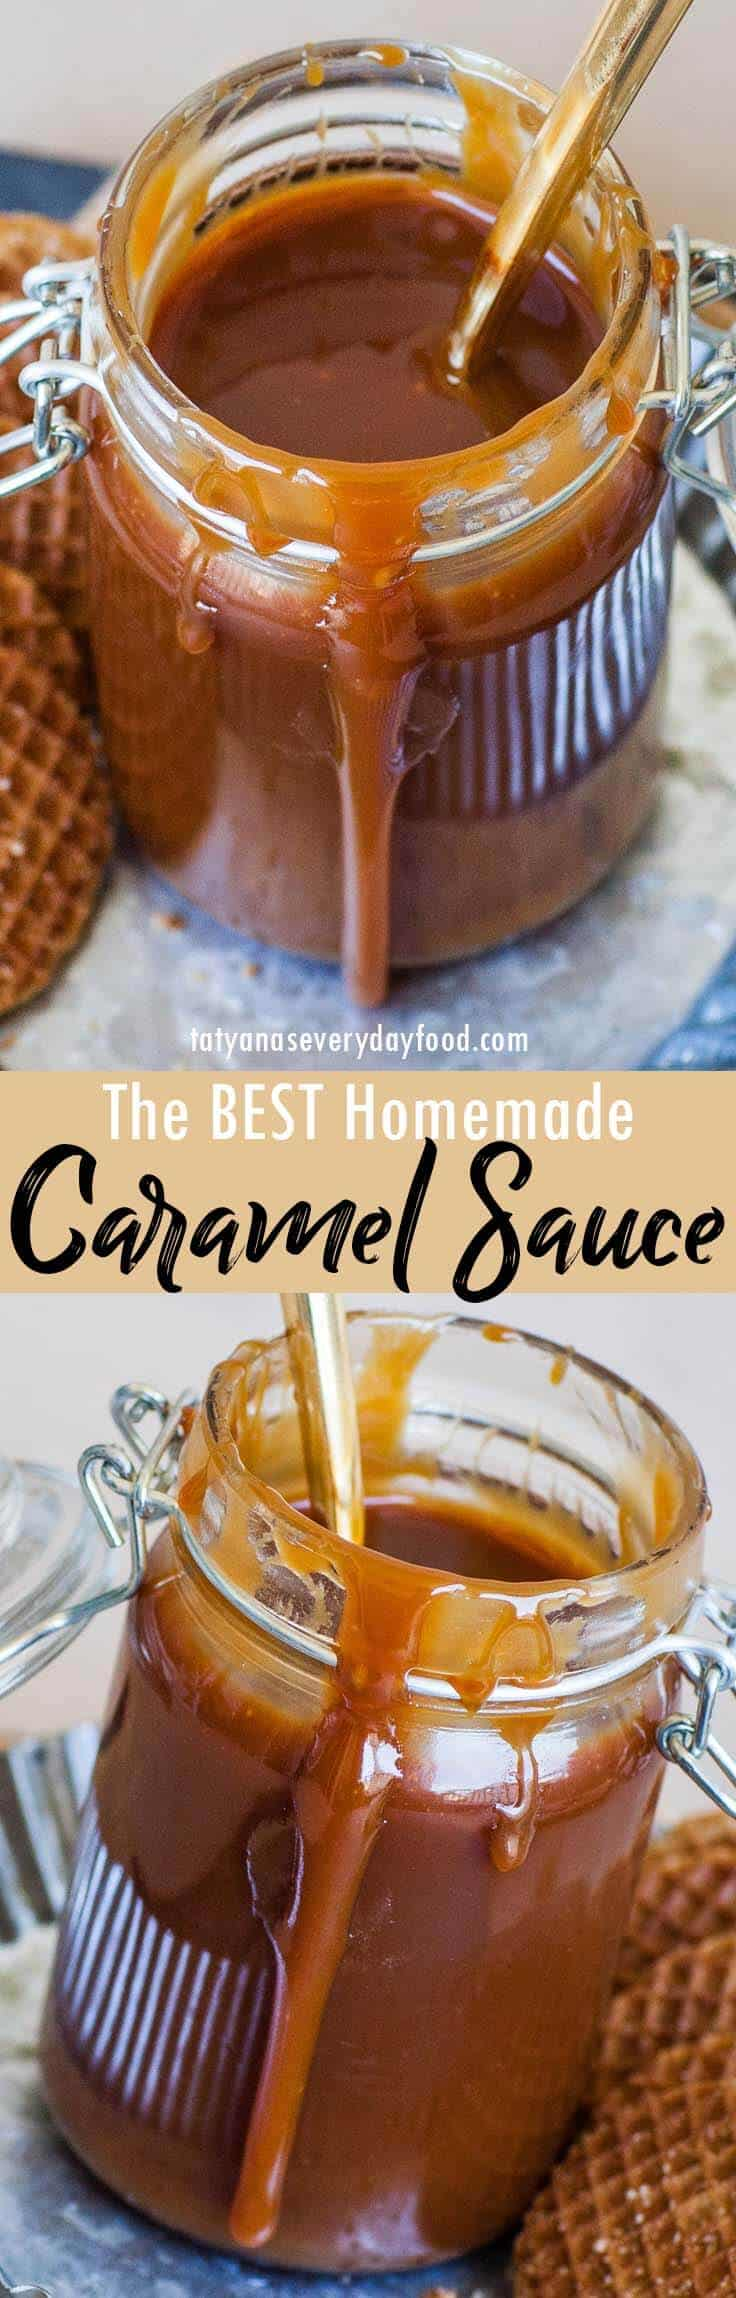 Best Caramel Sauce video recipe